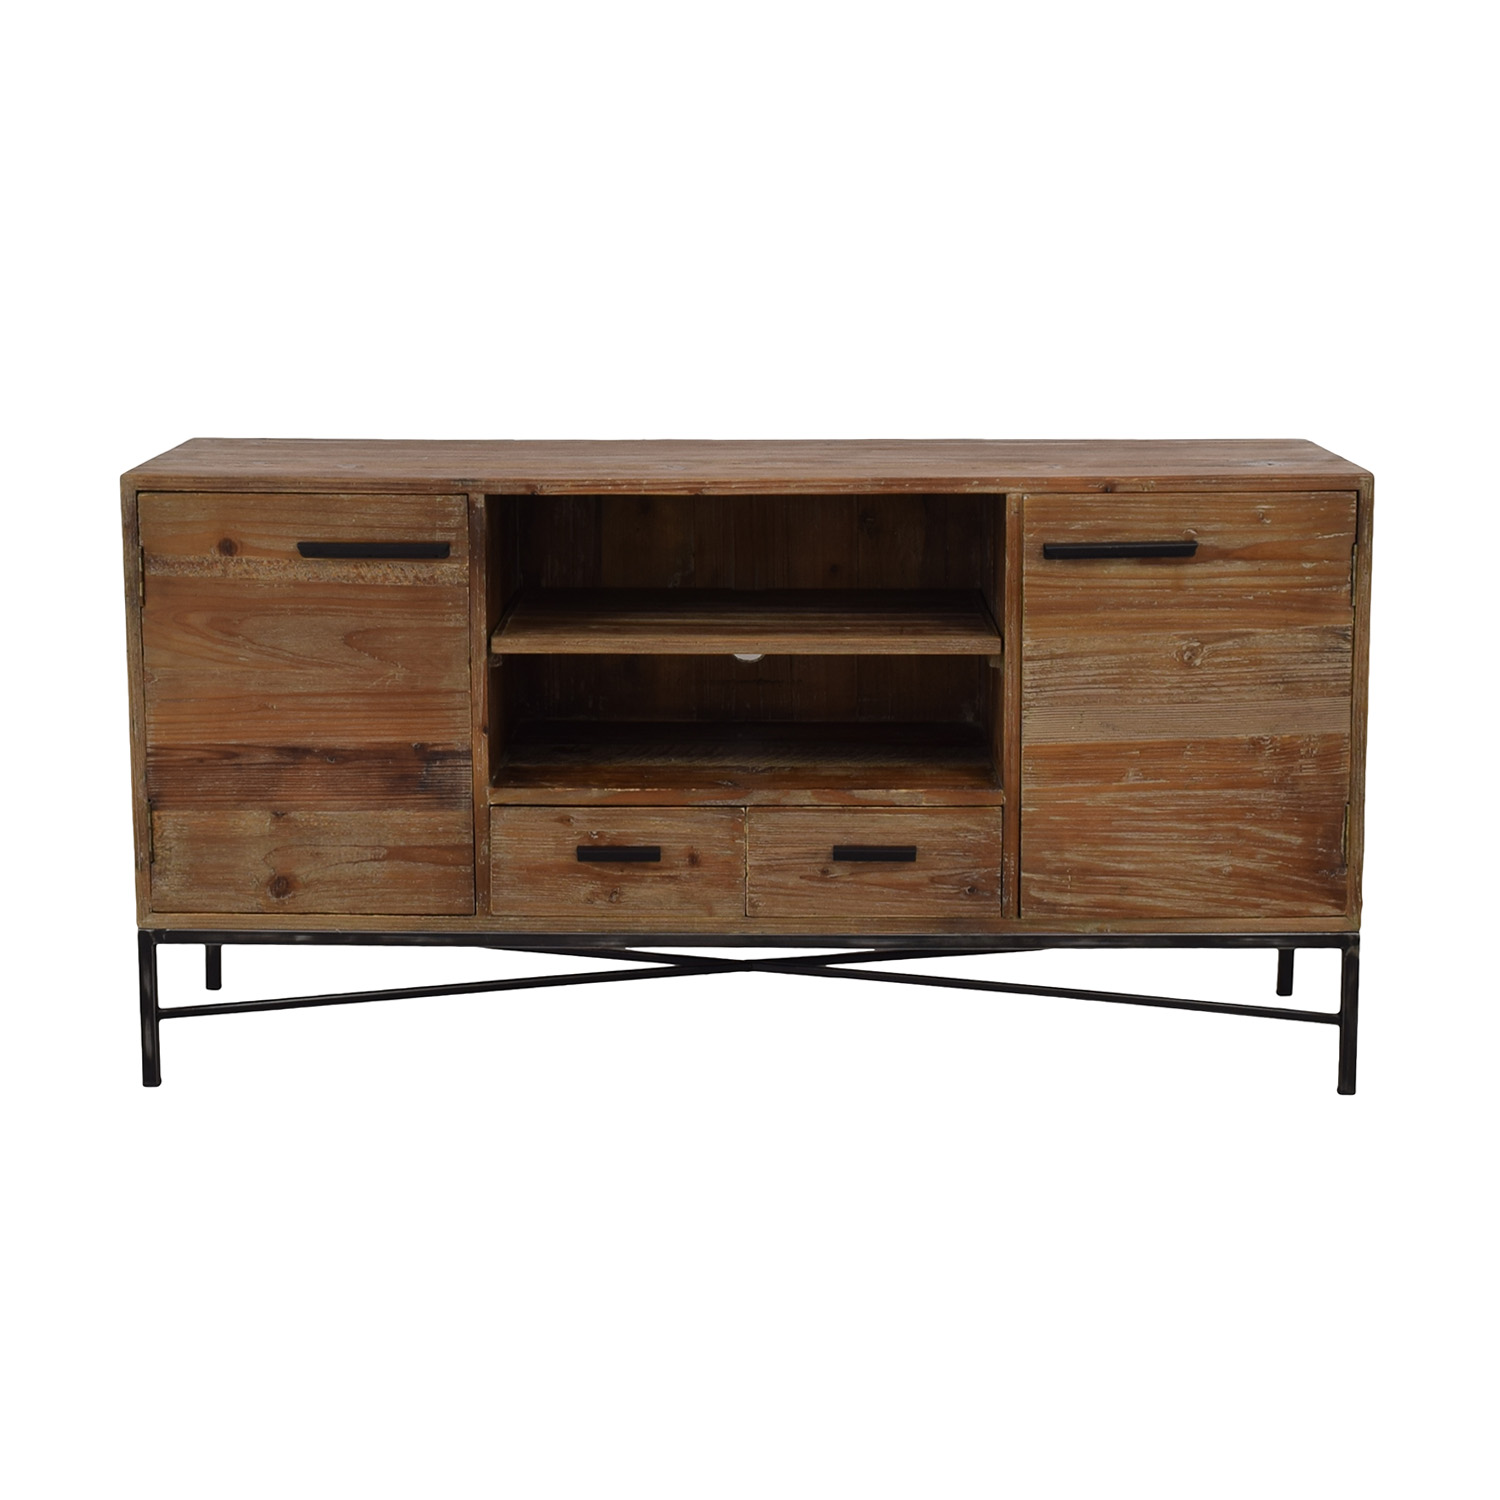 56 Off West Elm West Elm Rustic Wood Tv Stand Storage